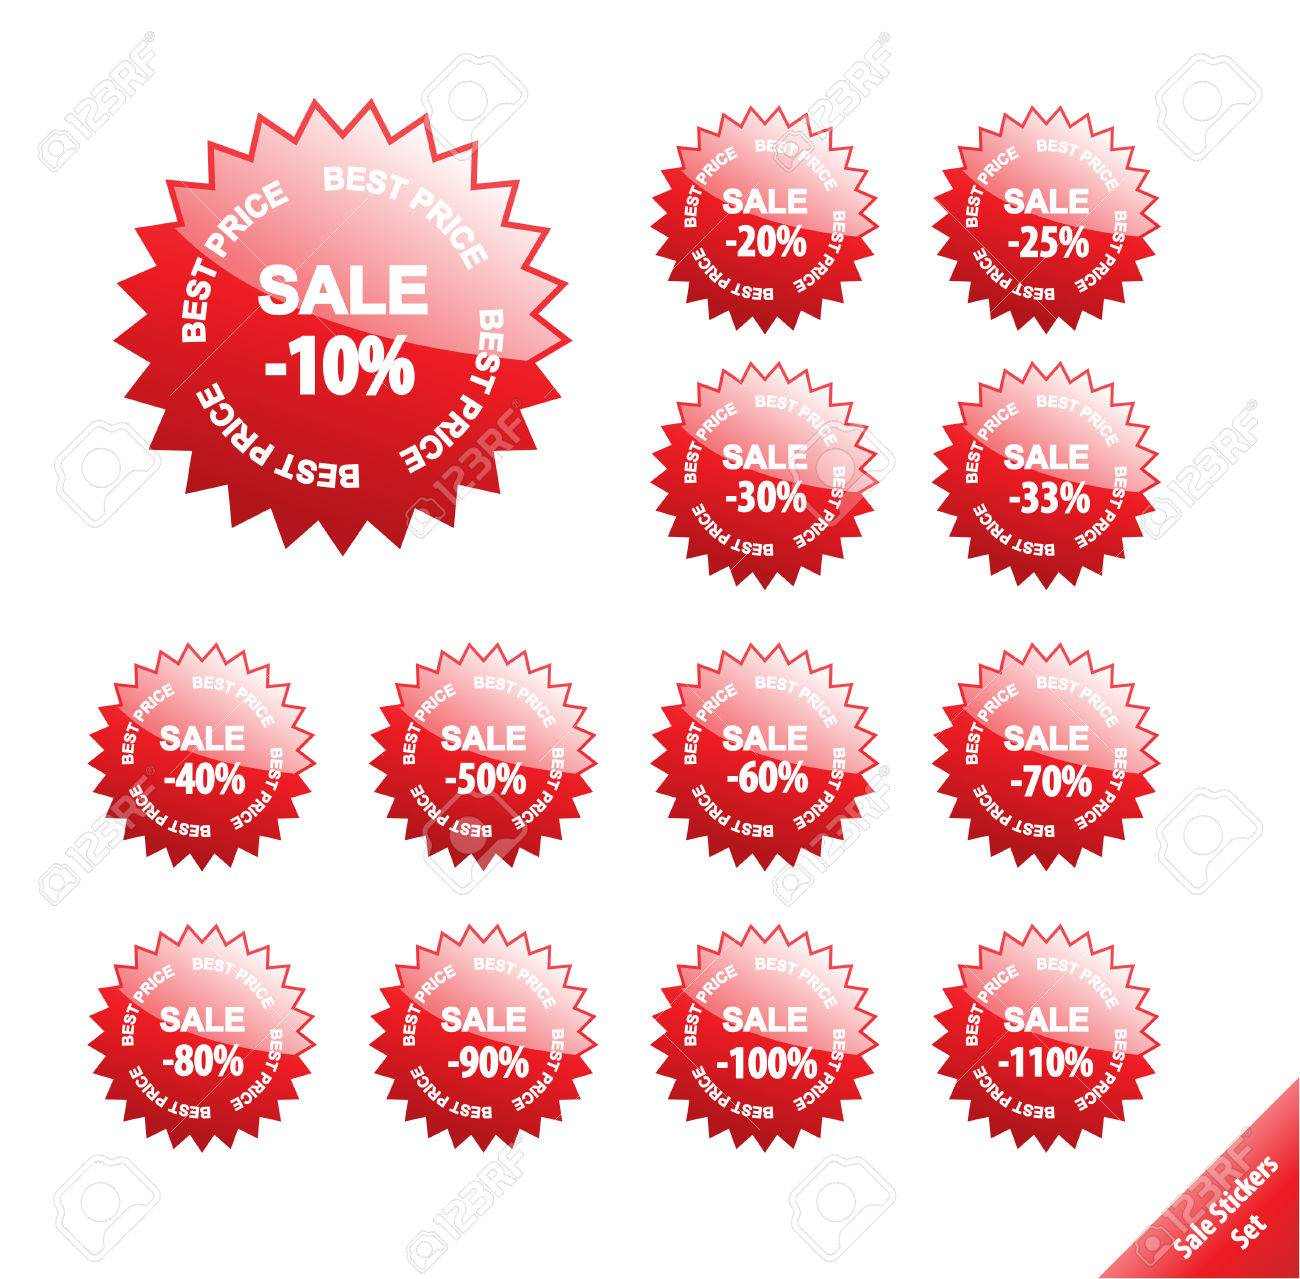 Collection of glossy marketing elements. Vector discount labels. Aqua web 2.0 style. Stock Vector - 4611493